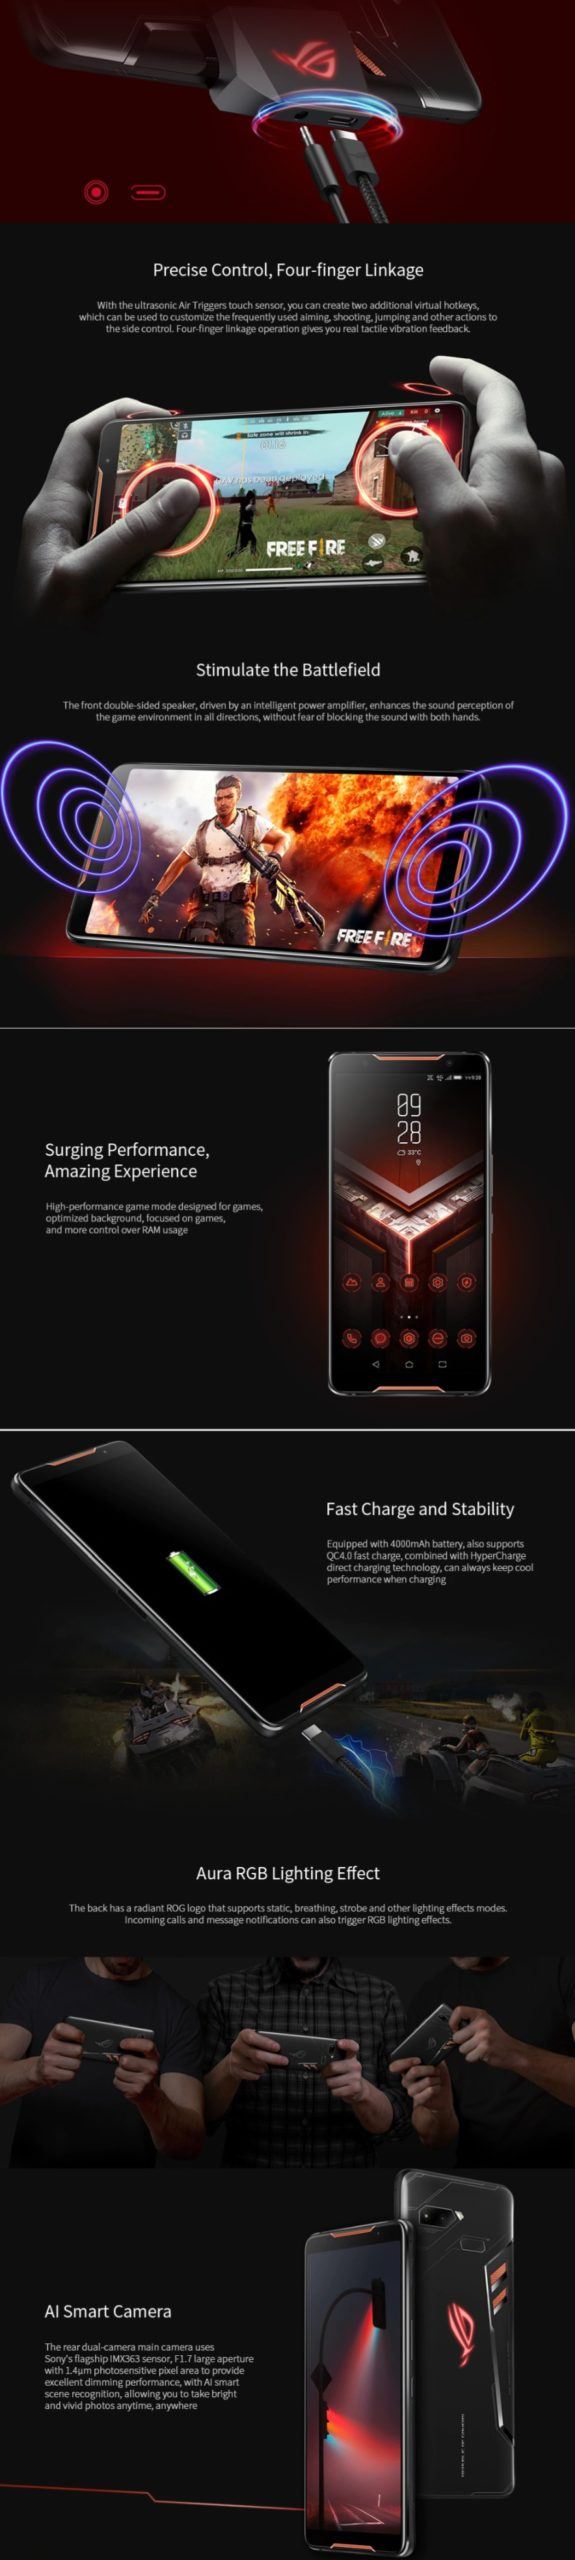 Black Friday Asus Best Deals - ASUS ROG ZS600KL Gaming Phone